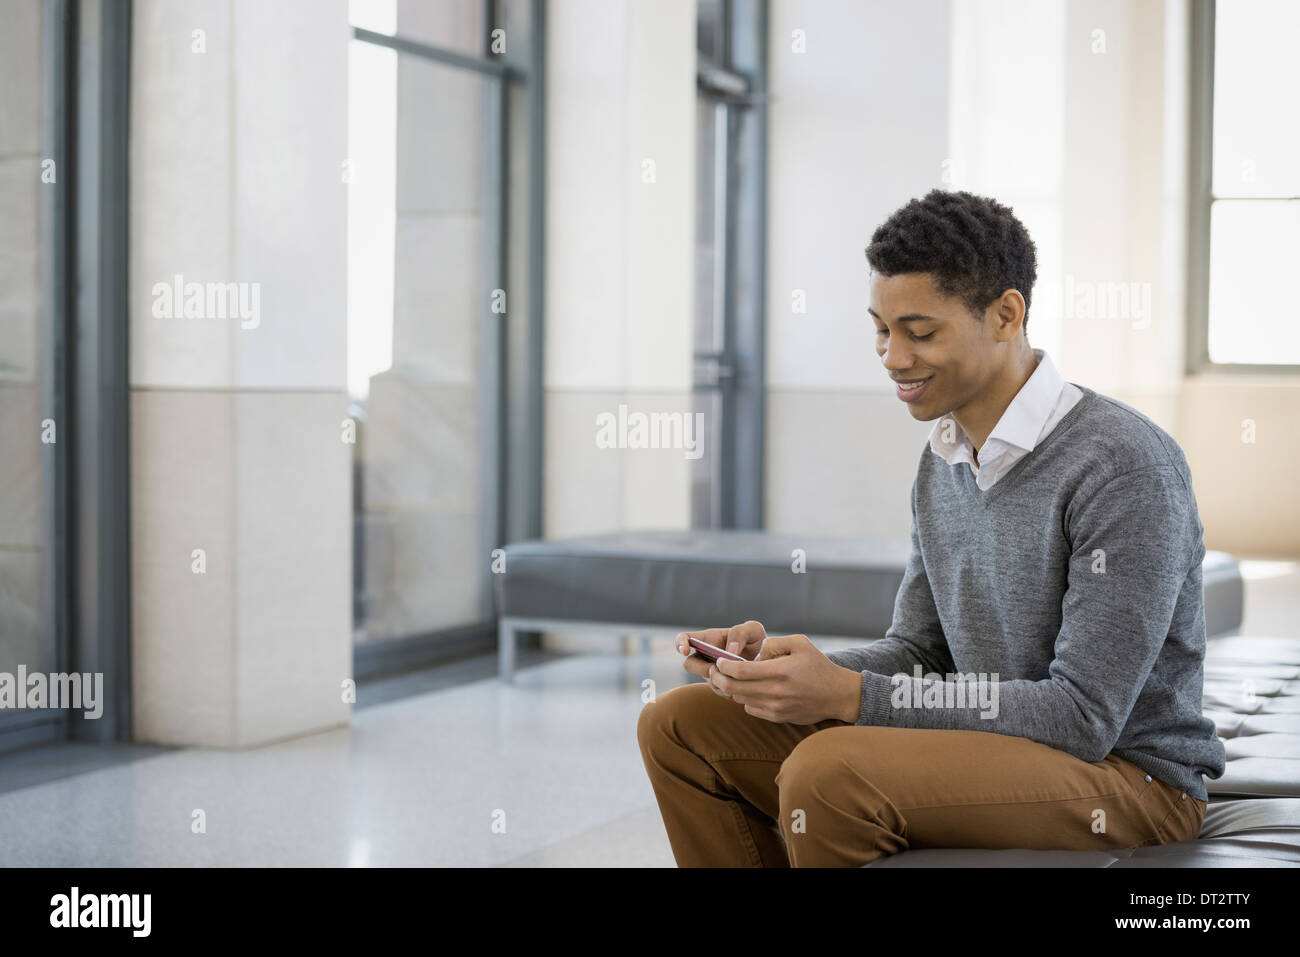 Urban Lifestyle A young man sitting in a lobby on a bench seat Using his mobile phone - Stock Image